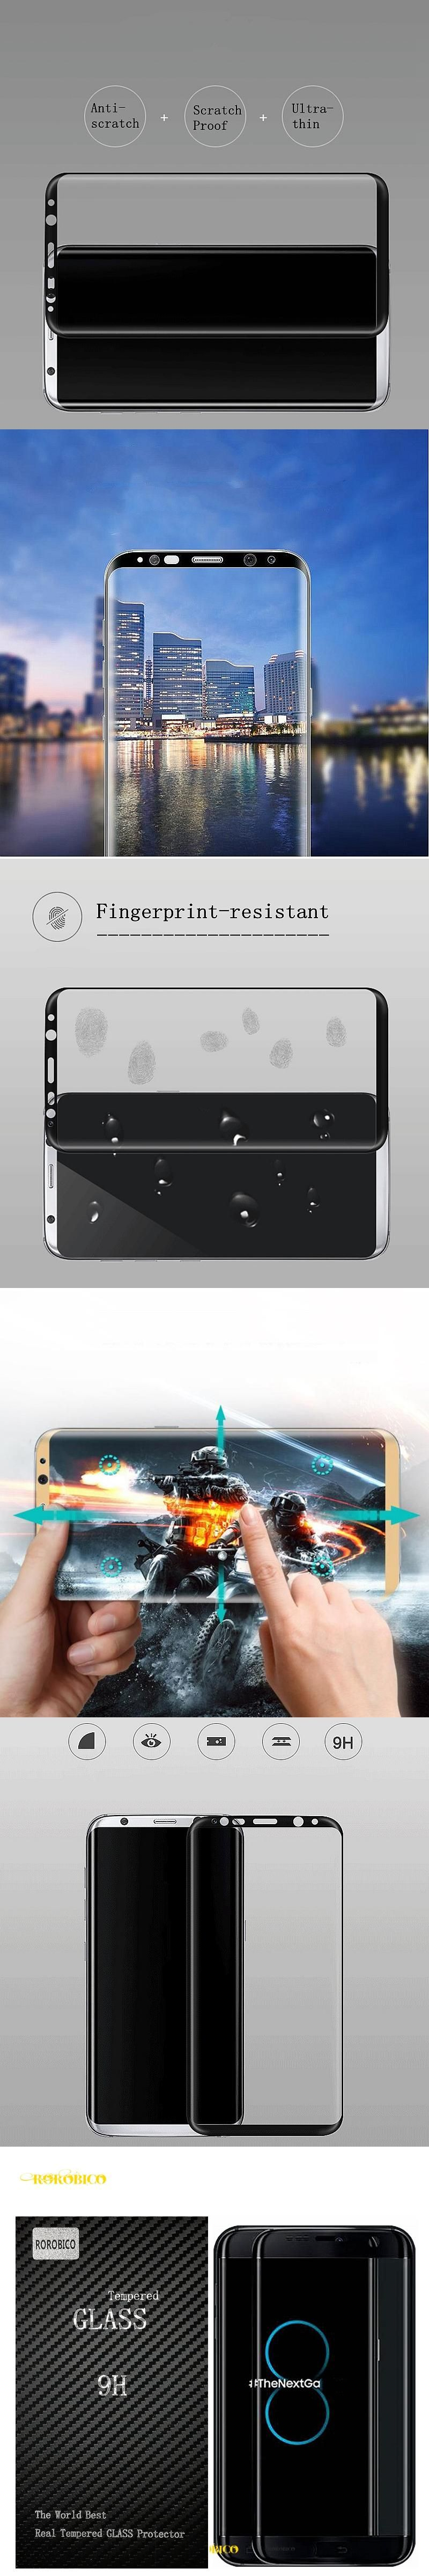 3D Curved For Samsung Galaxy S8 Plus G955 G9550 S8 Edge Full coverage Screen Protector